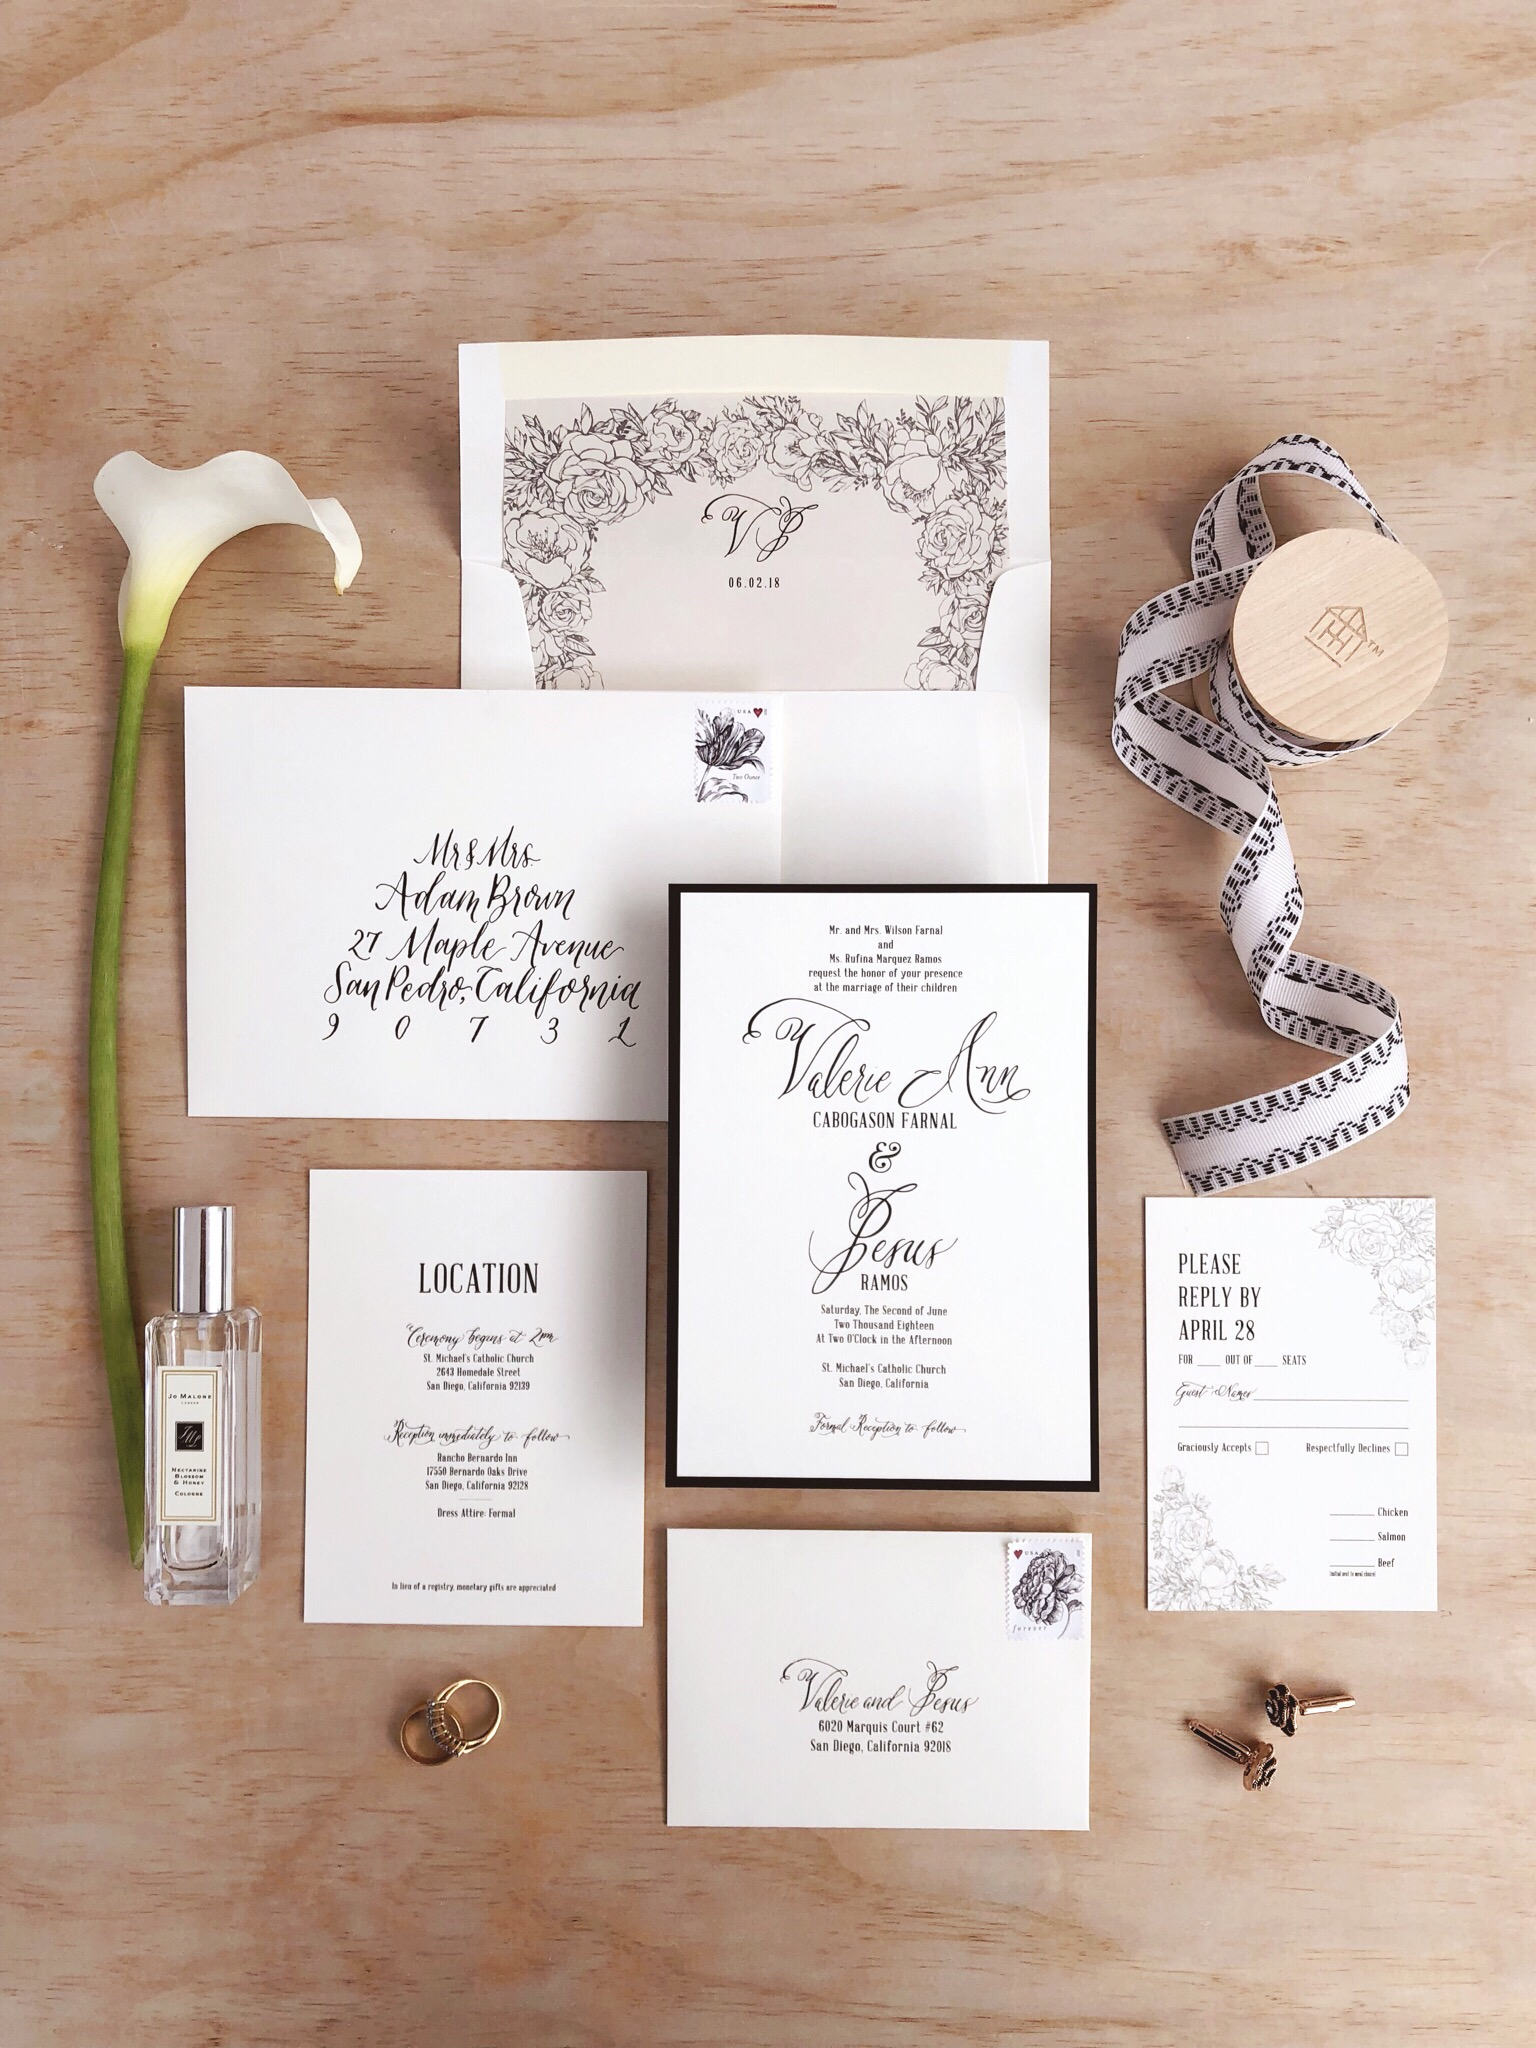 Classy Black and White Calligraphy Wedding Invitation.JPG